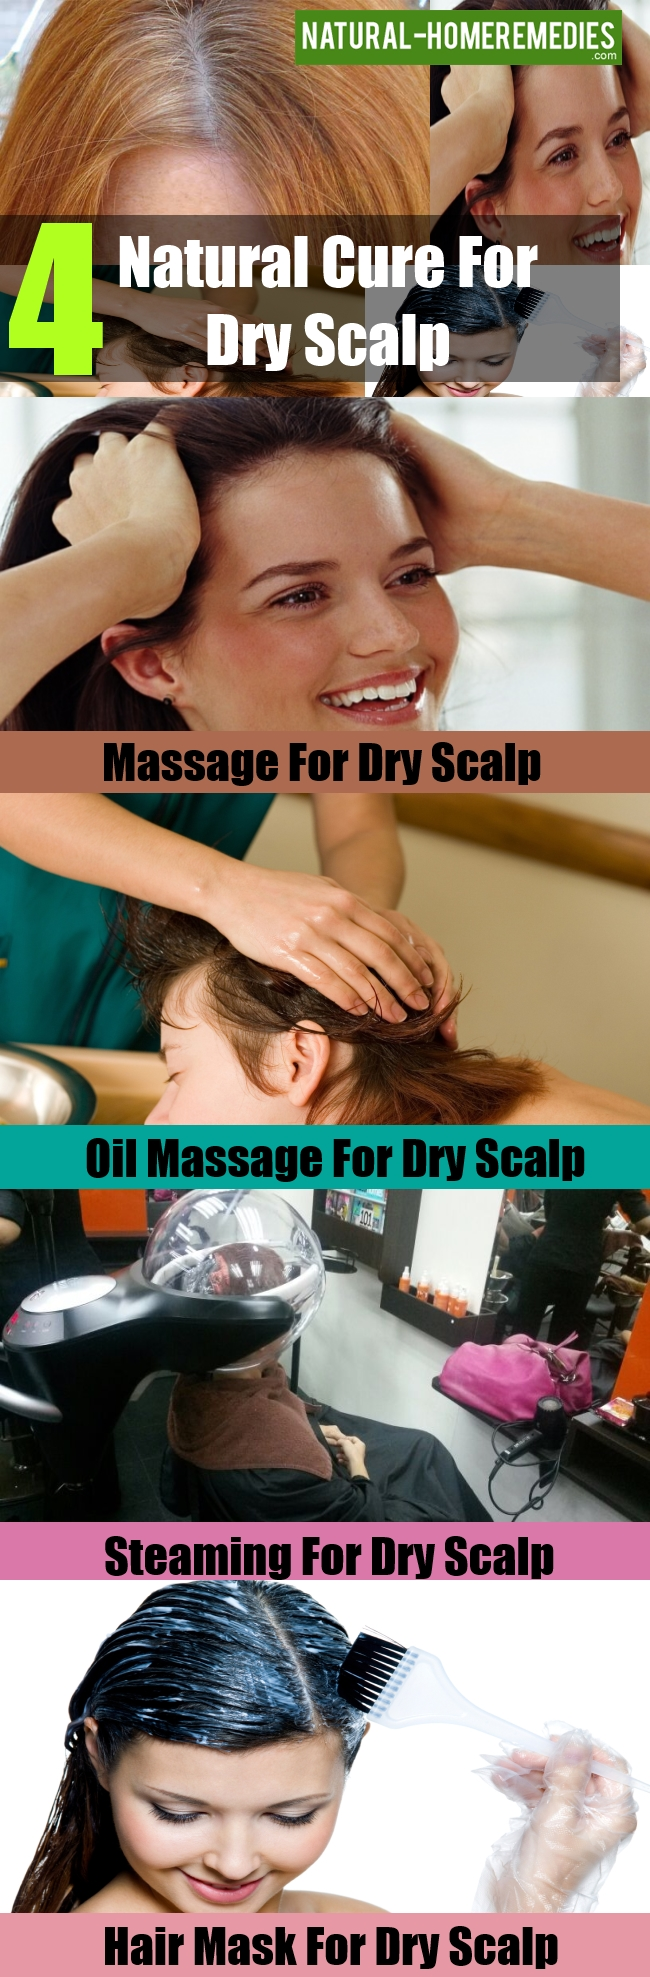 Natural Cure For Dry Scalp